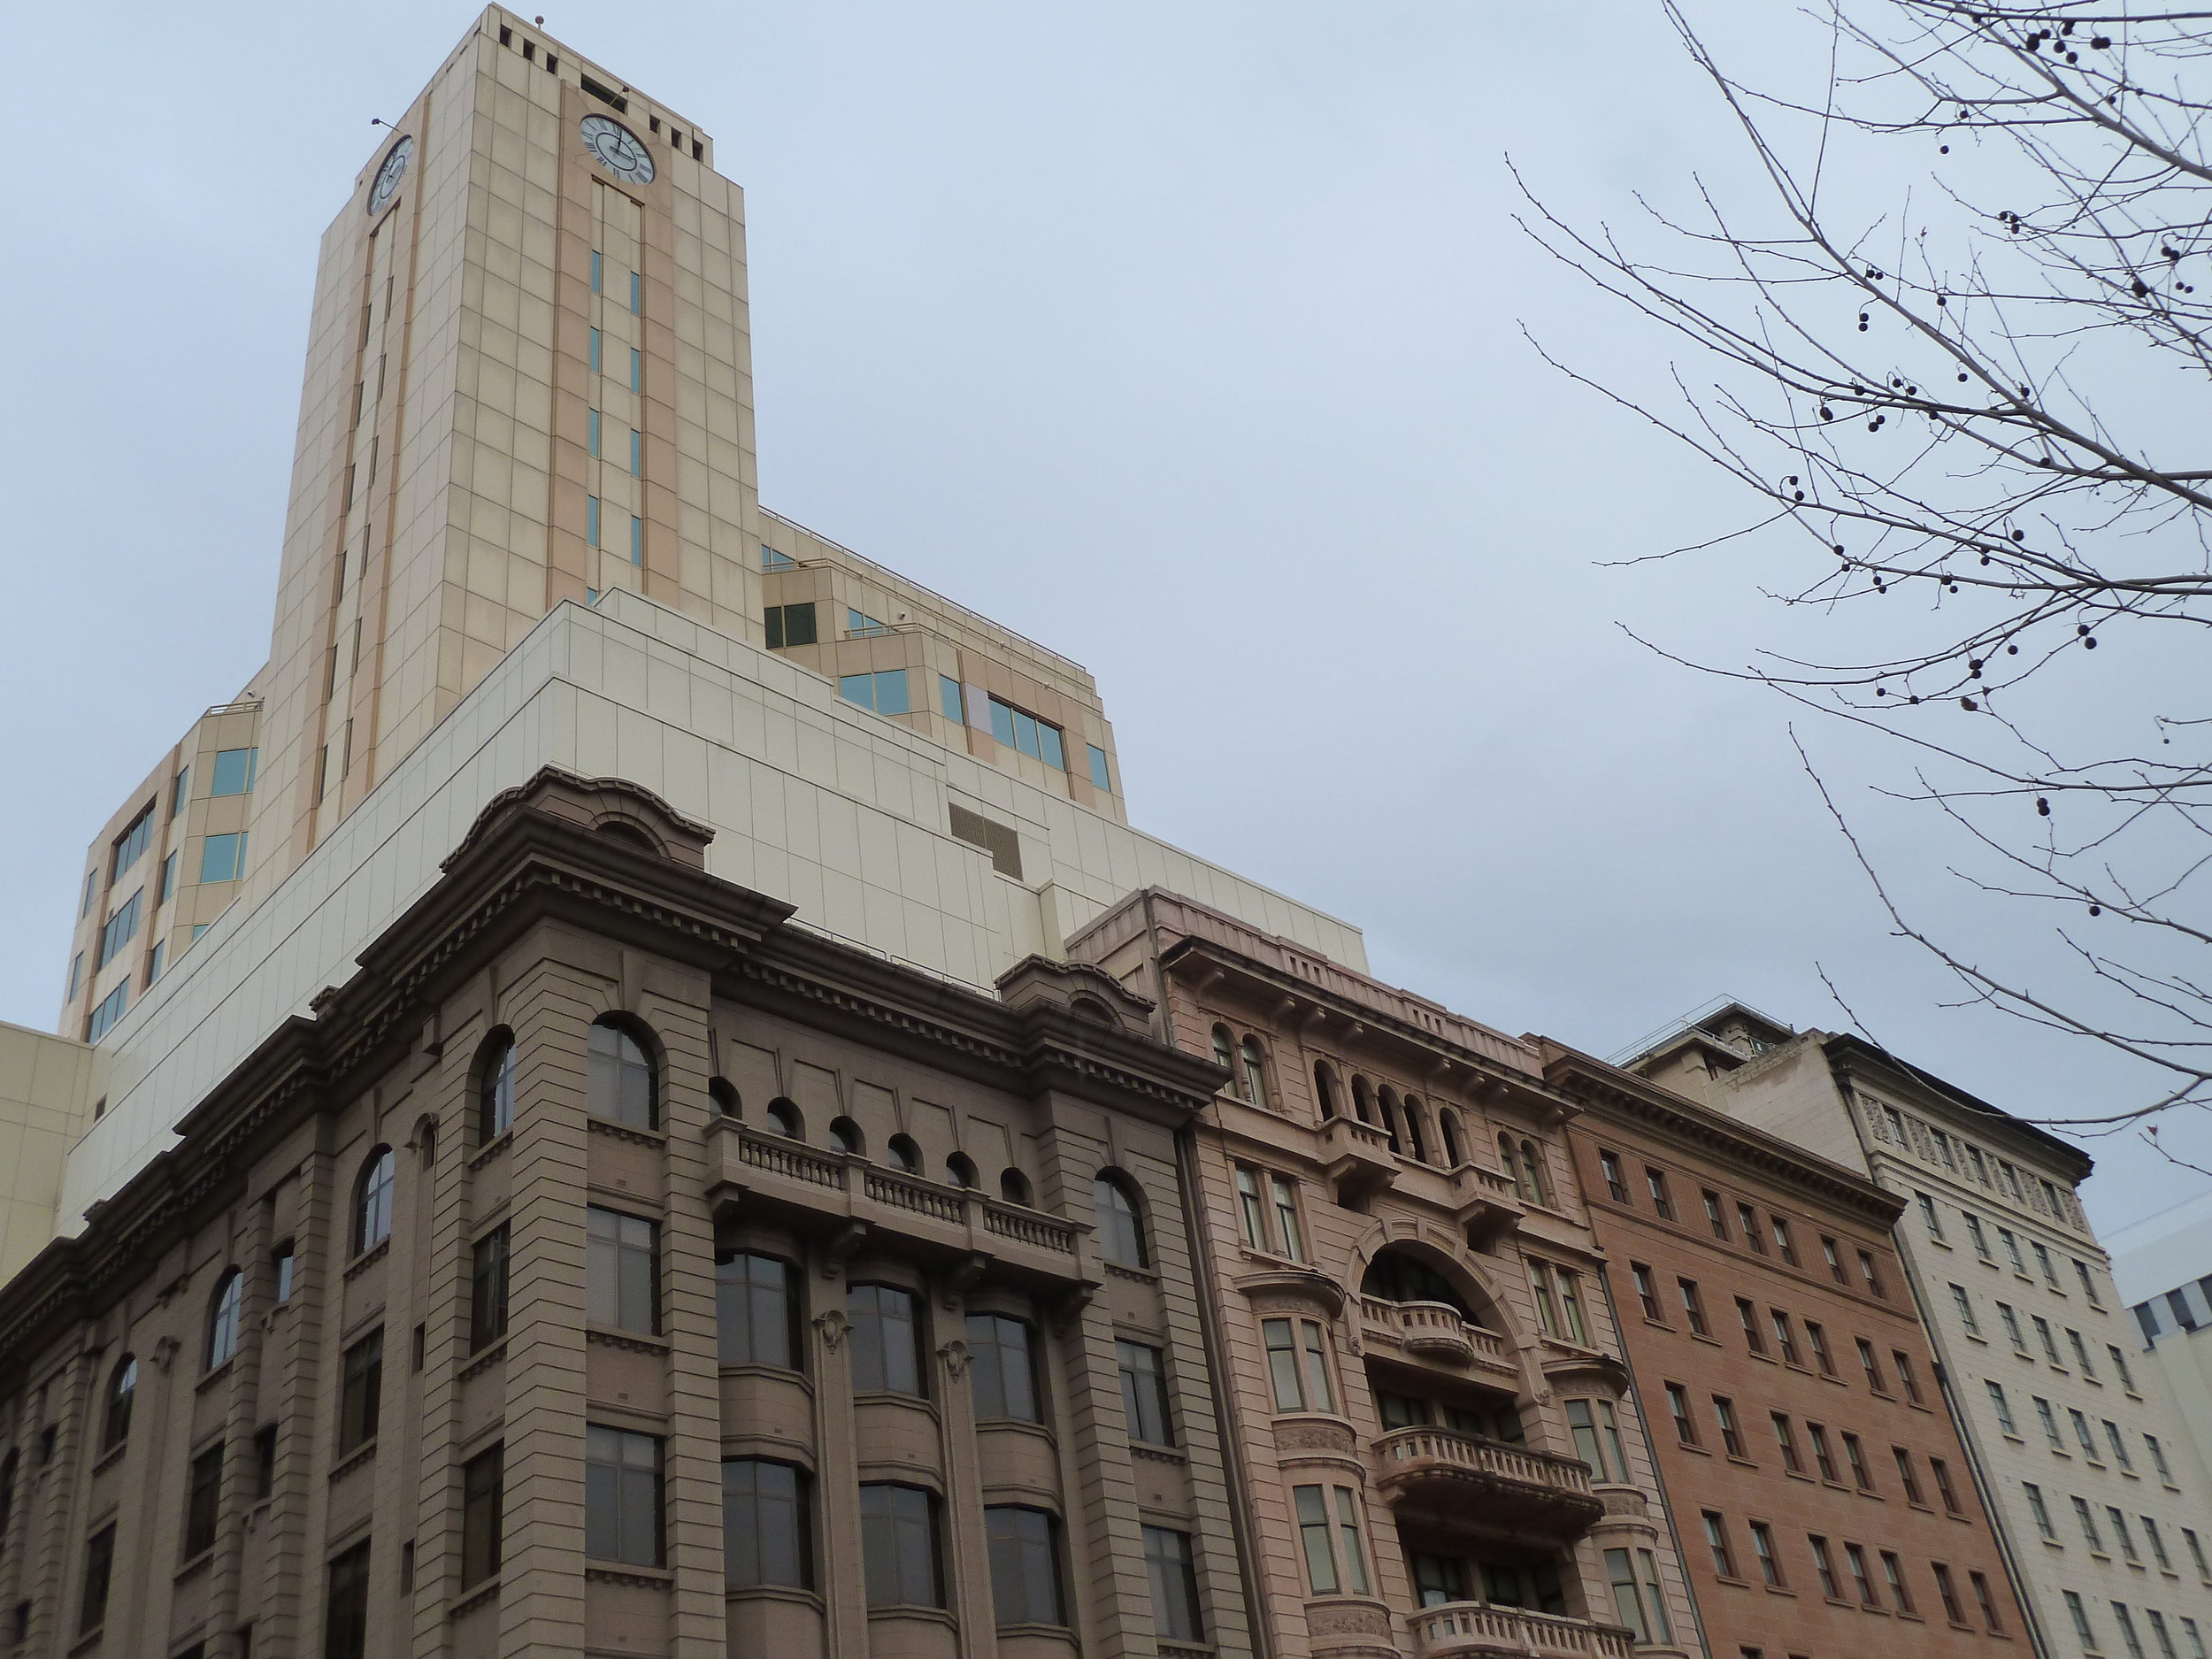 North Terrace façades with not-so-nice behind